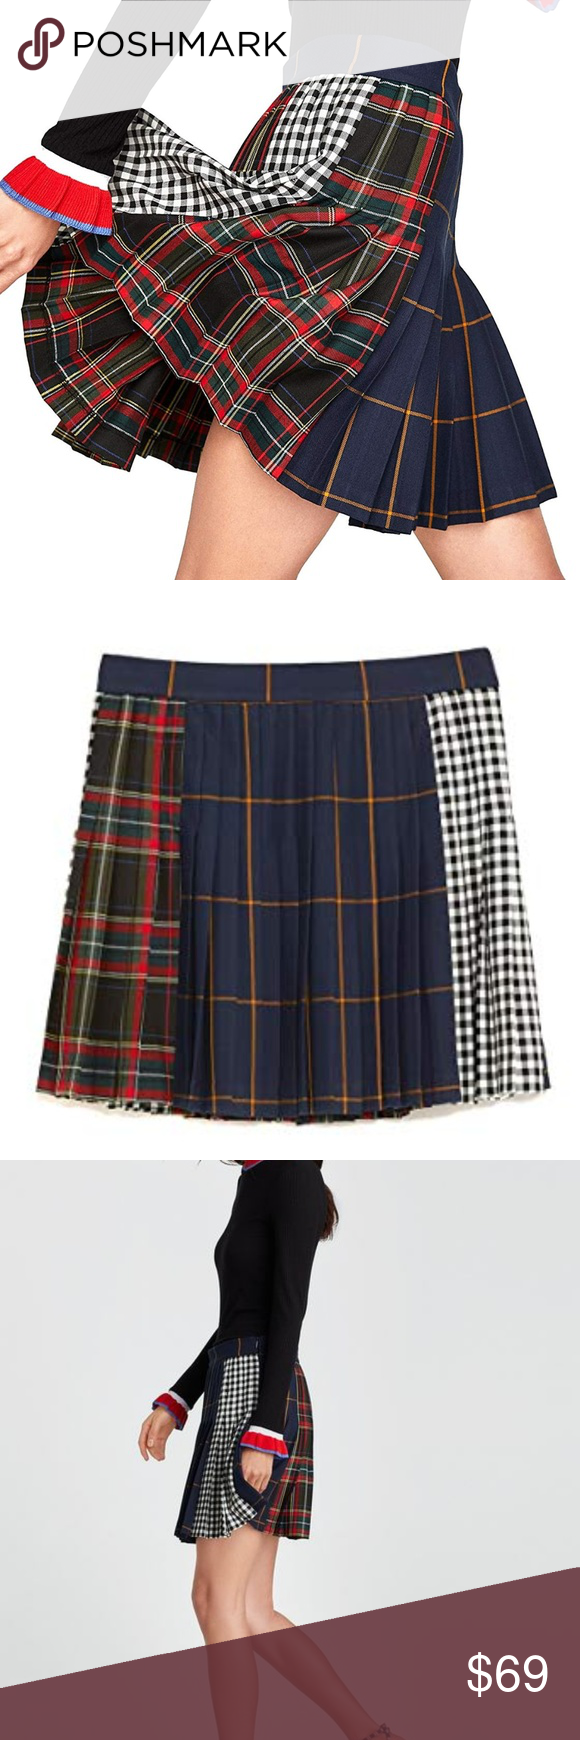 e45afe5eb2 Zara Woman Checked Mini Skirt 7149/041 Red Plaid L Zara Woman Checked Mini  Skirt U36 7149/041 Red Plaid Large box pleats New with Tags Christmas  Holiday ...